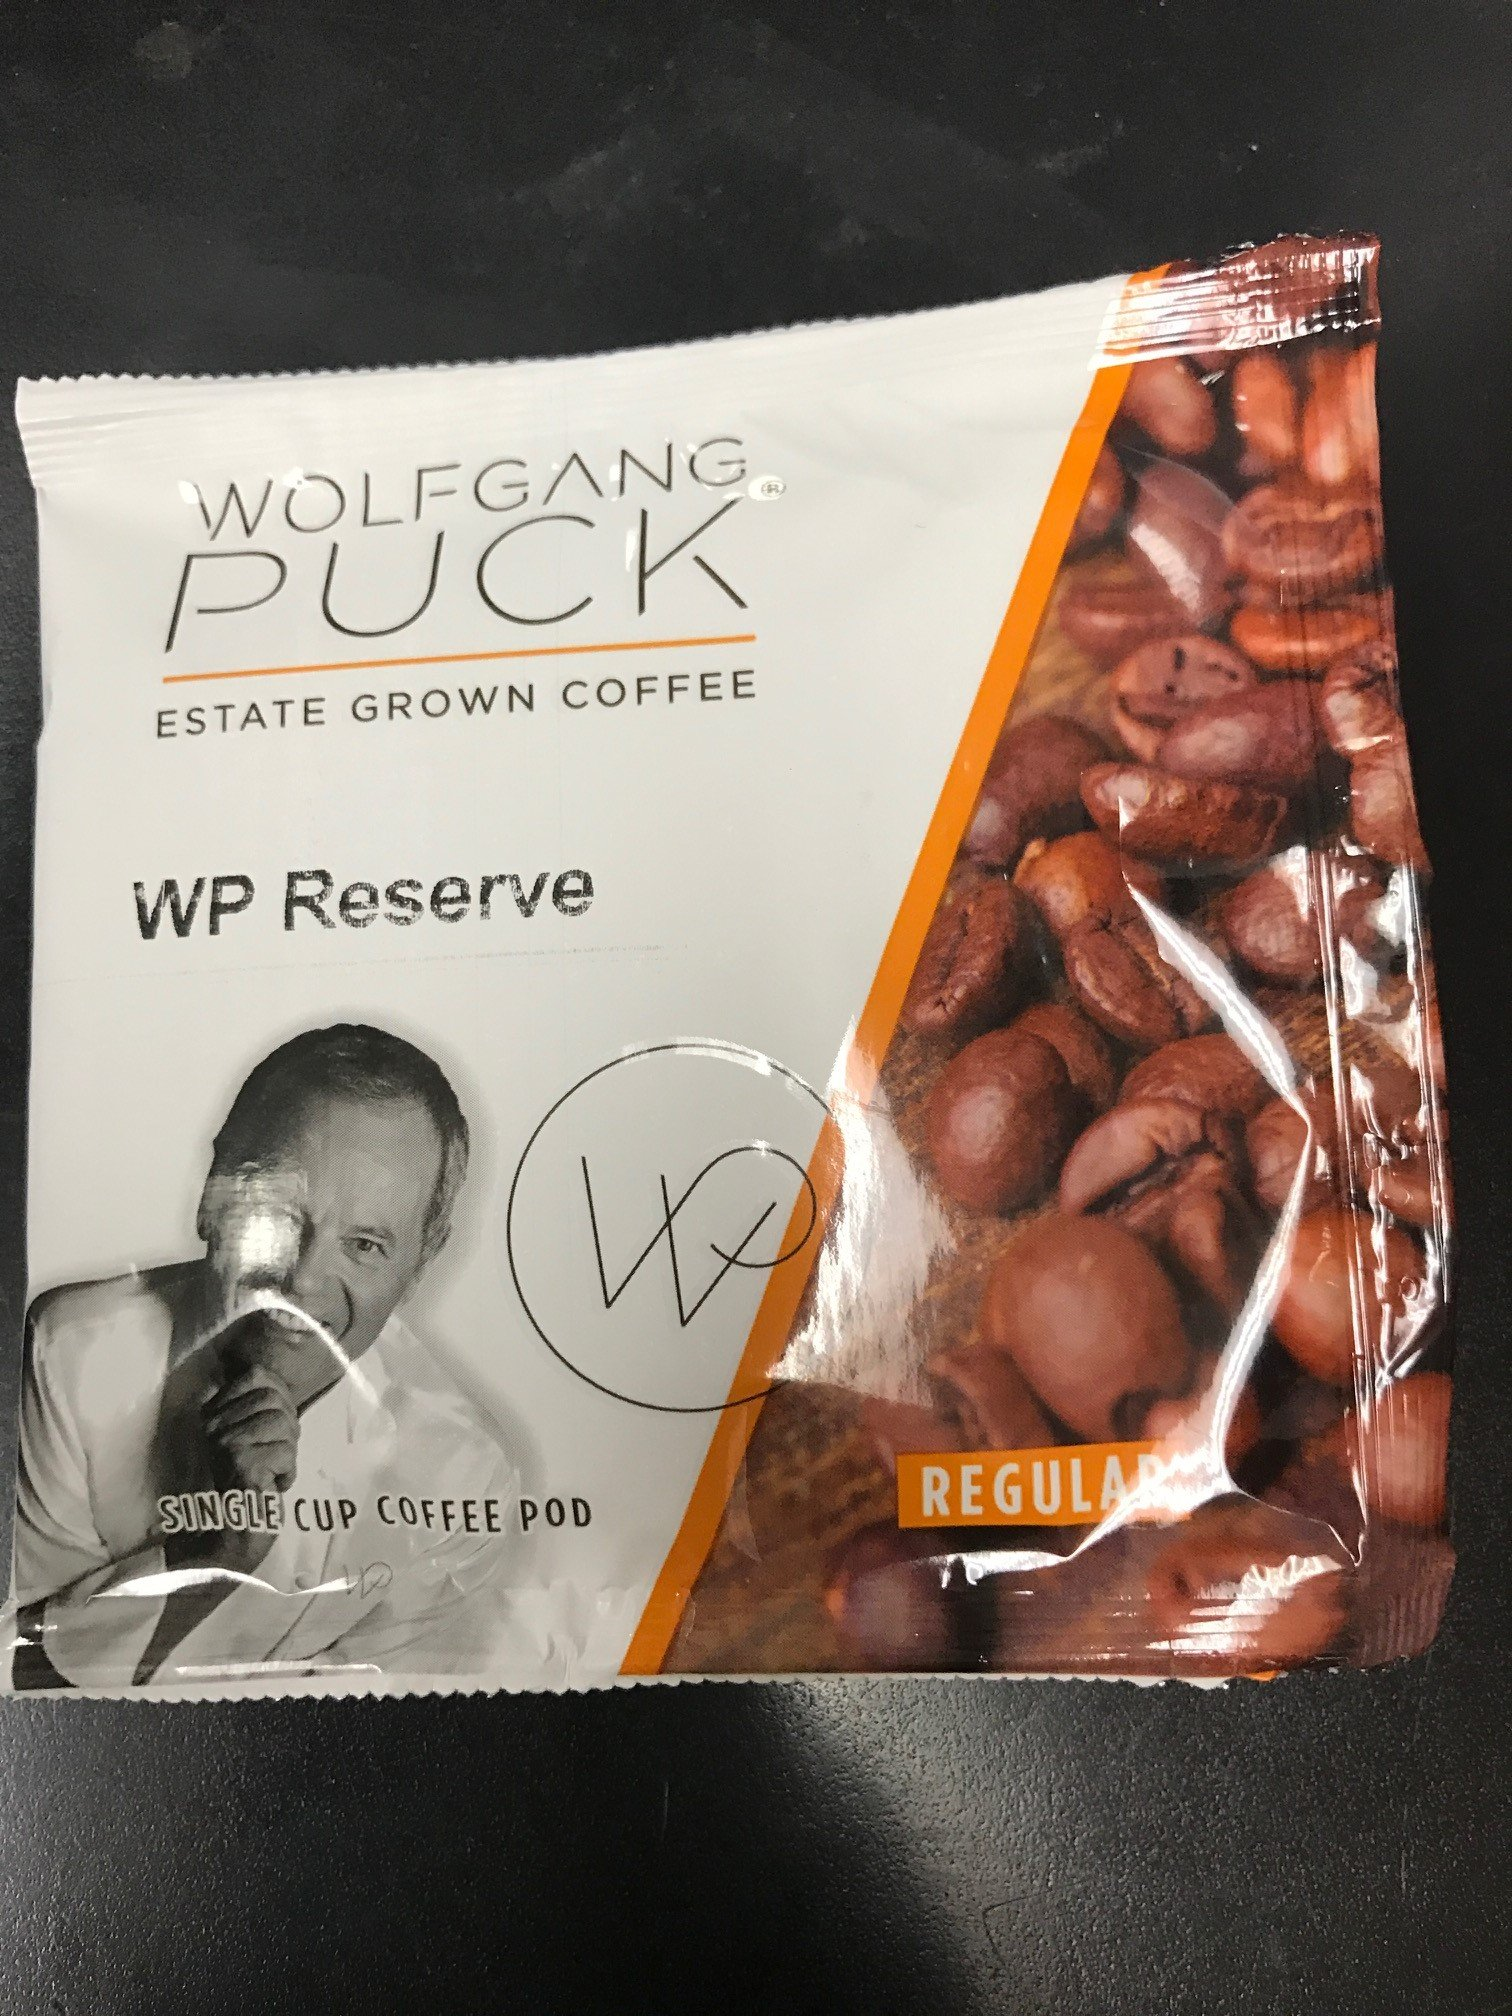 Wolfgang Puck Signature Regular Coffee Pods